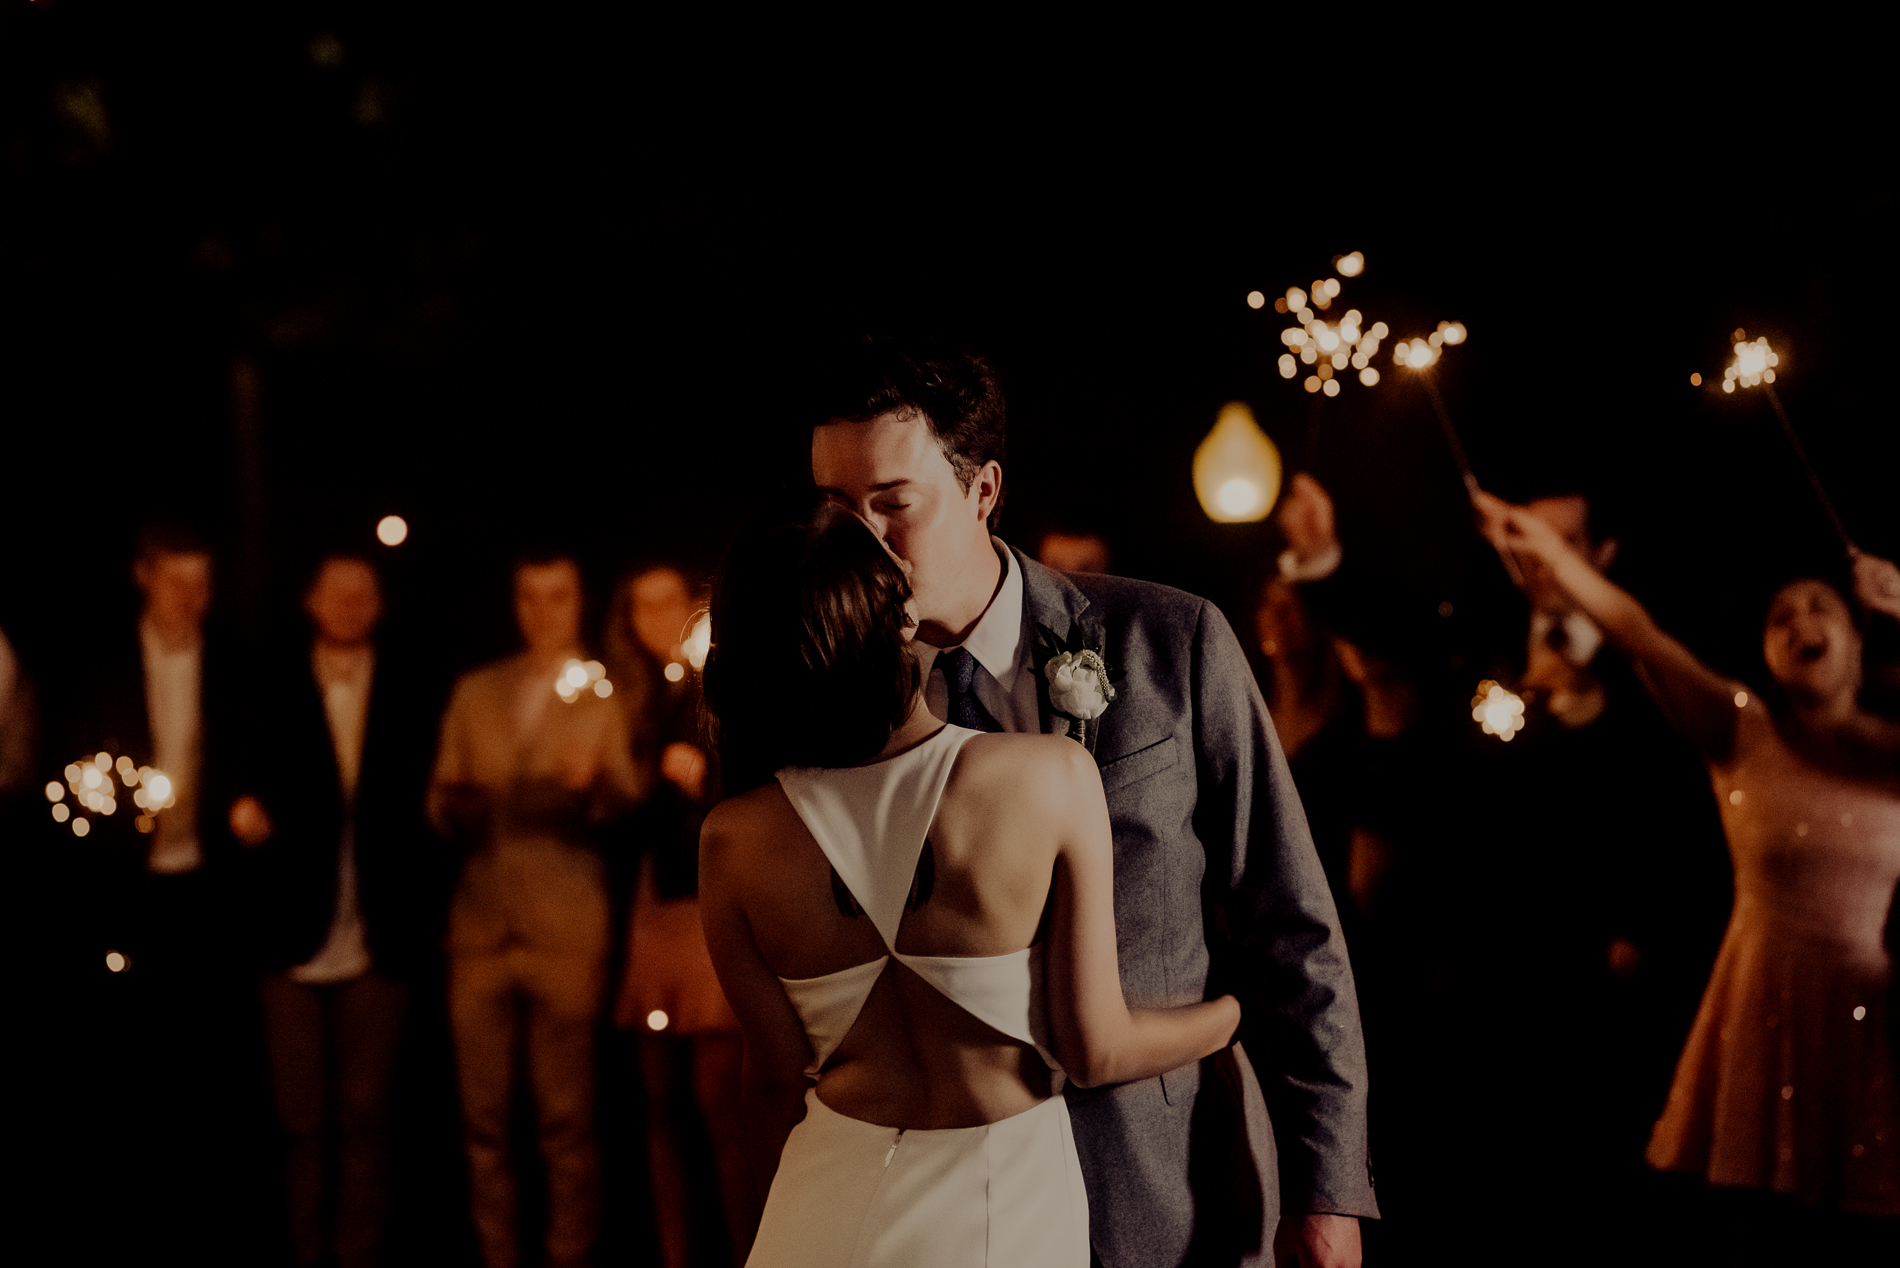 gabi and campbell east nashville wedding at riverwood mansion by wilde company-62.jpg